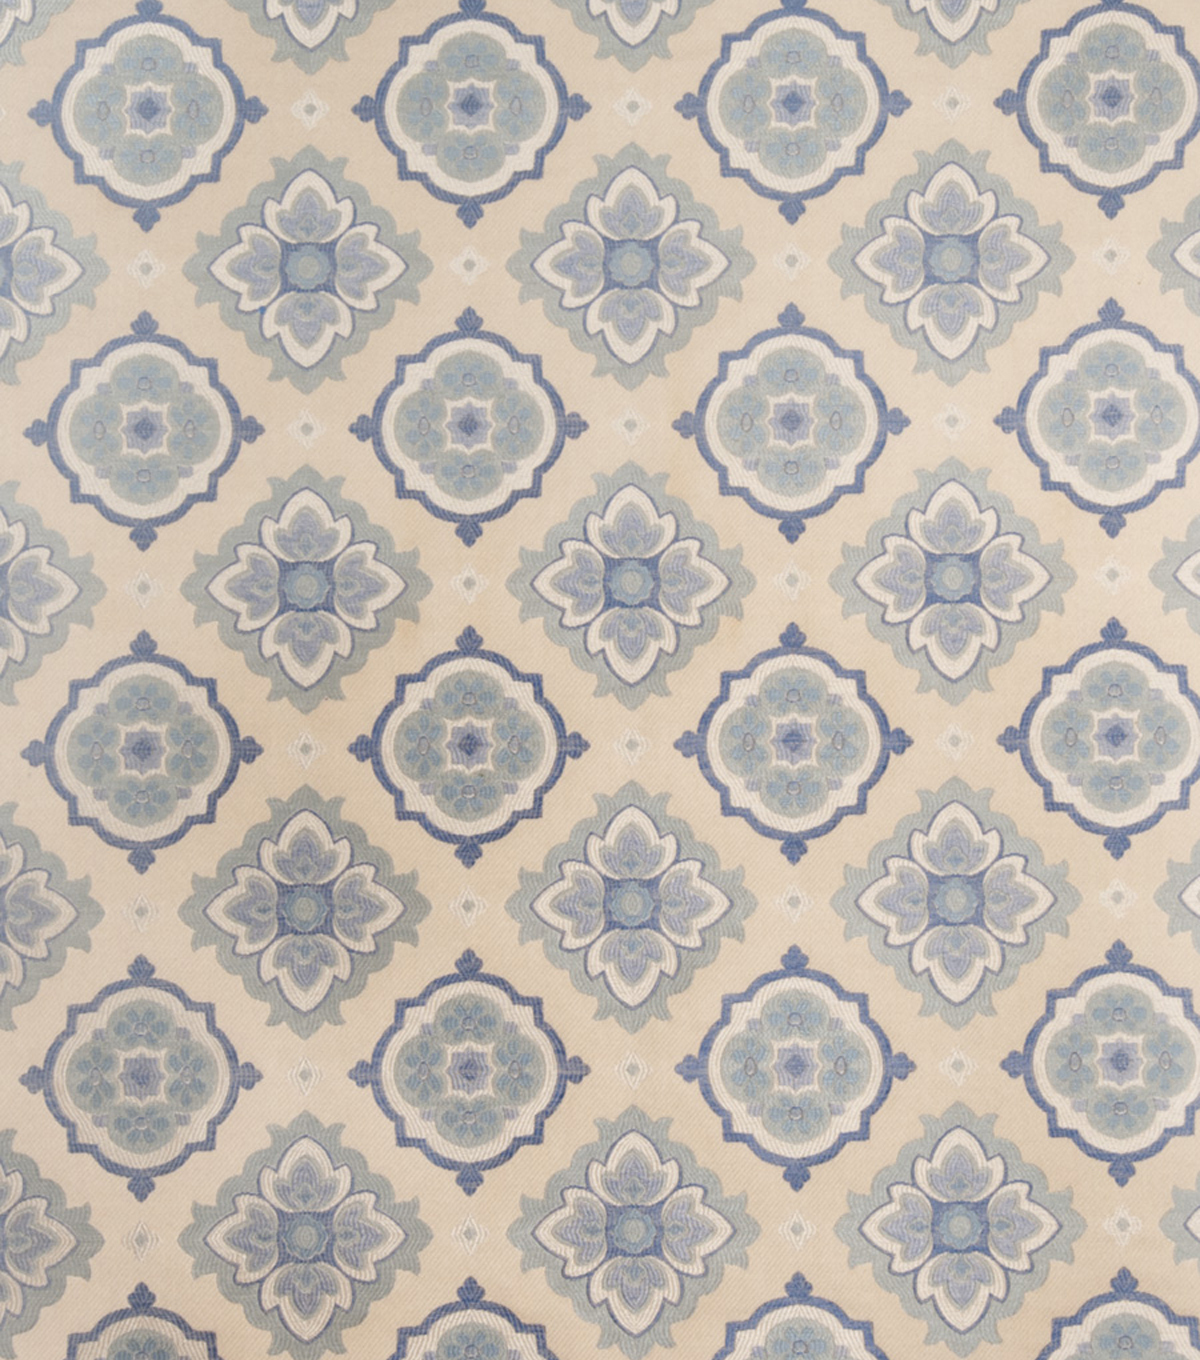 Home Decor 8\u0022x8\u0022 Fabric Swatch-Jaclyn Smith Irvington Cobalt